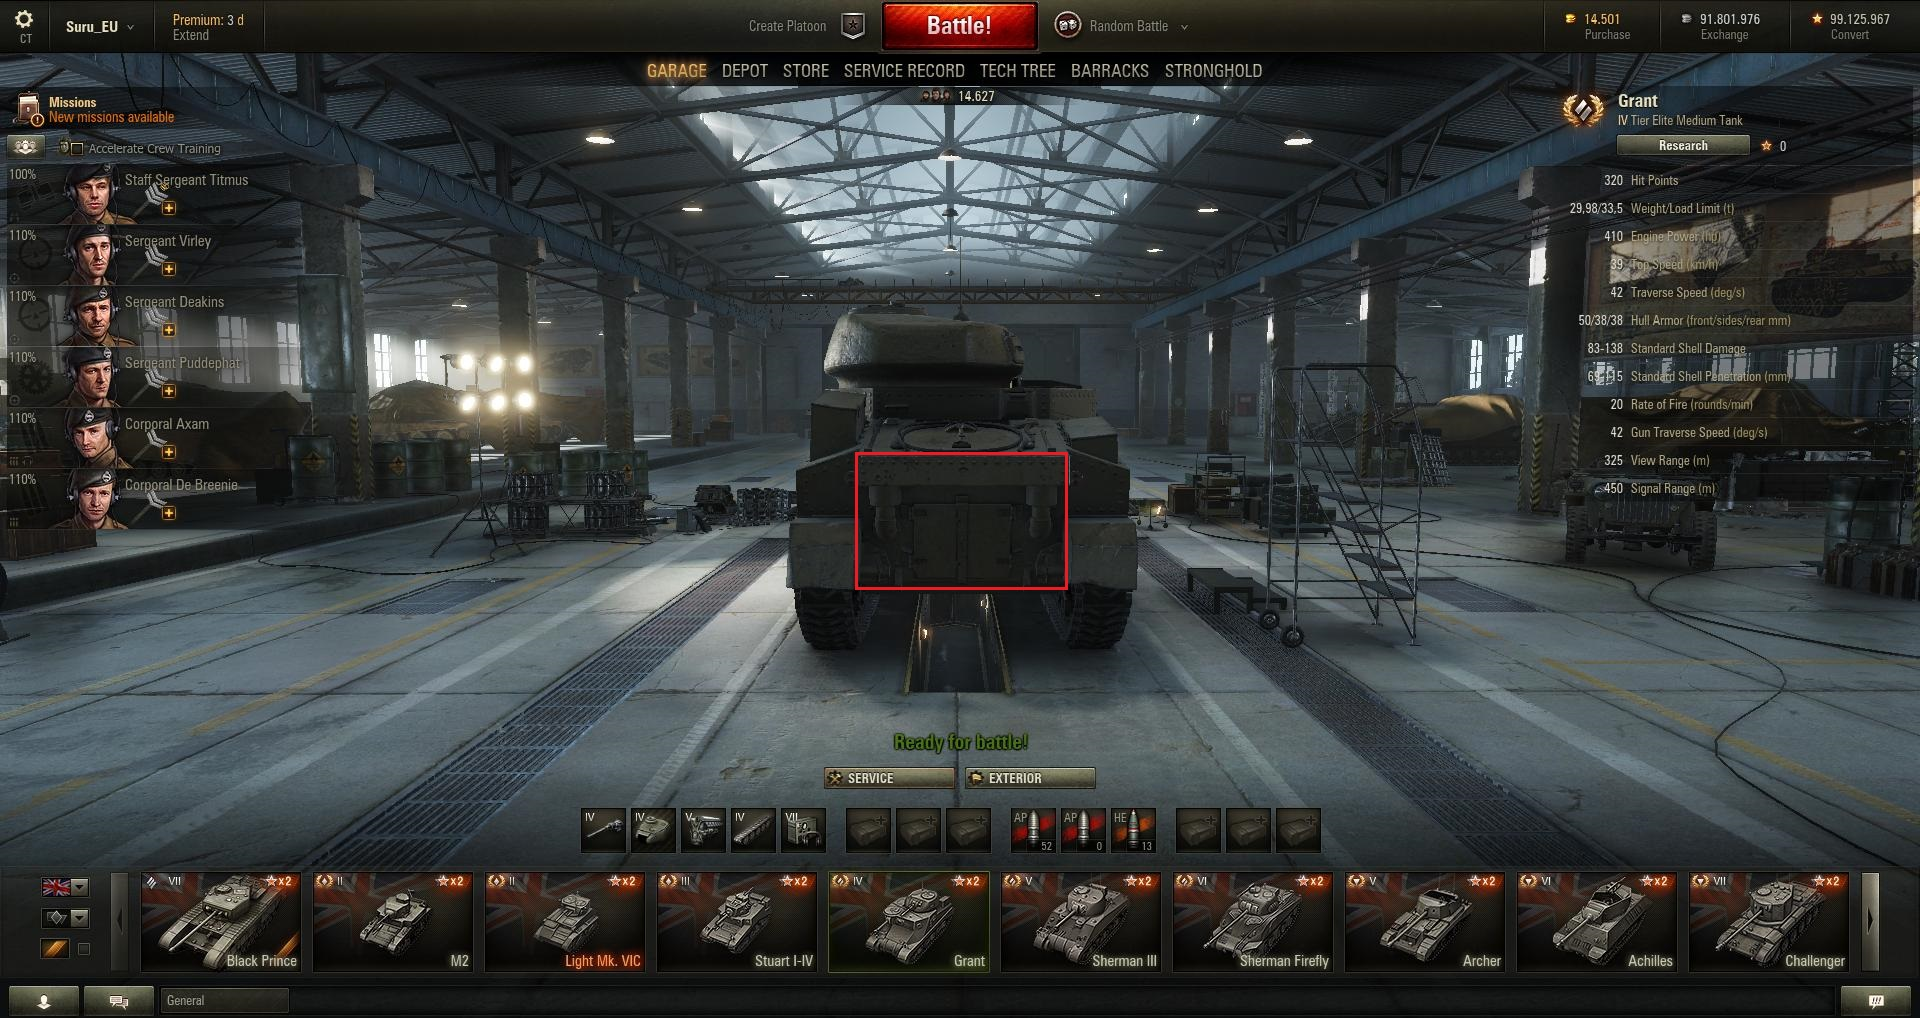 World-of-Tanks Patch-95 Grant-Heck-buffed